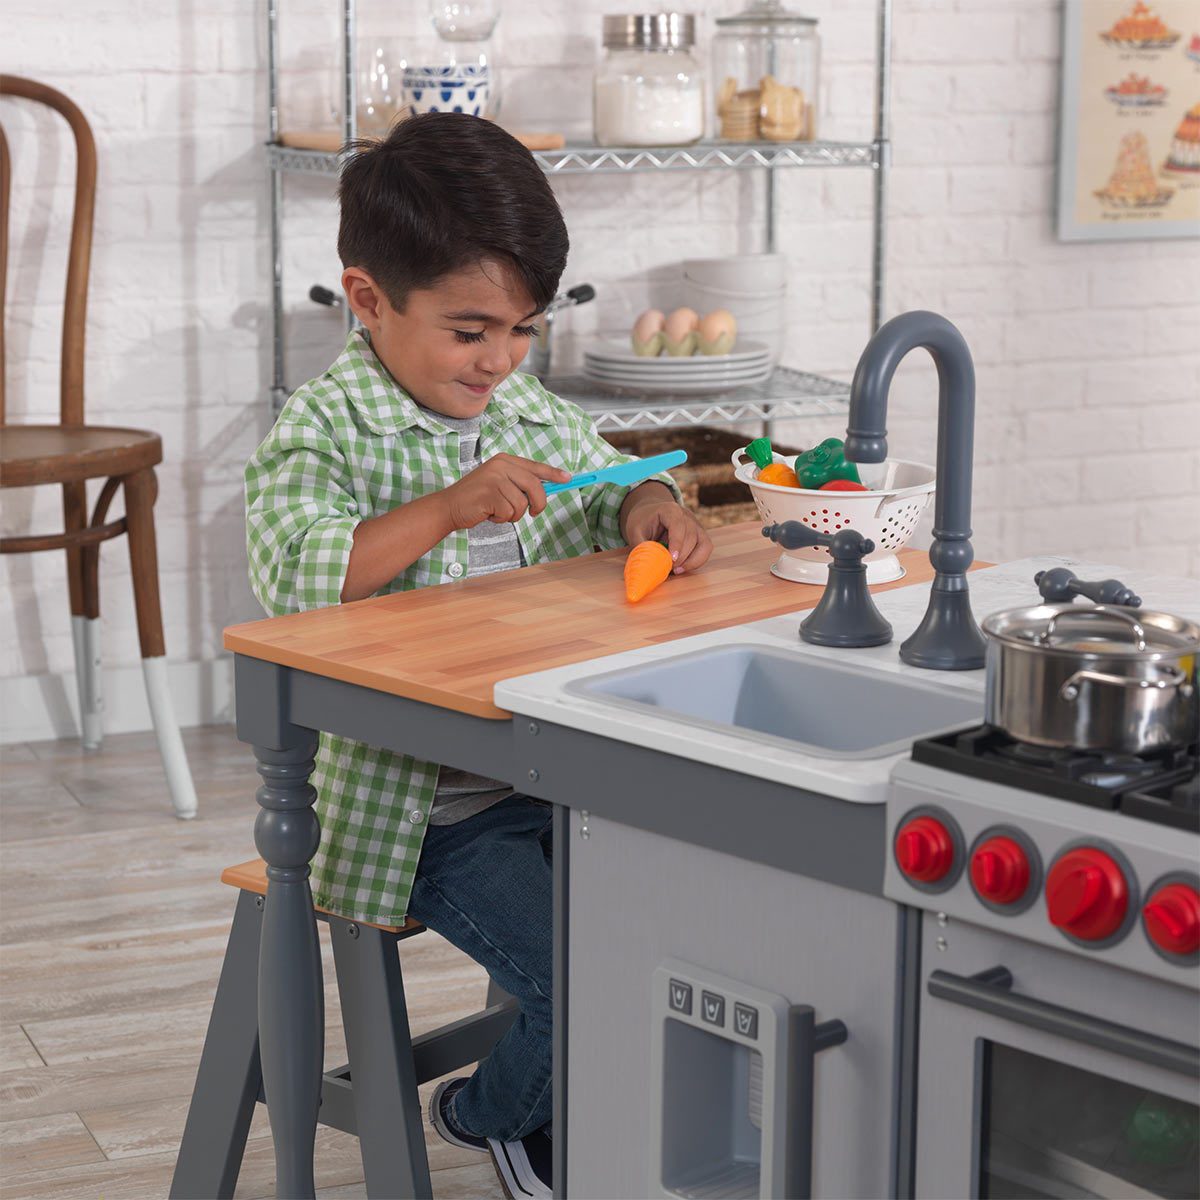 KidKraft Chef's Cook 'N' Create Island Kitchen With EZ Kraft Assembly (3+ Years)